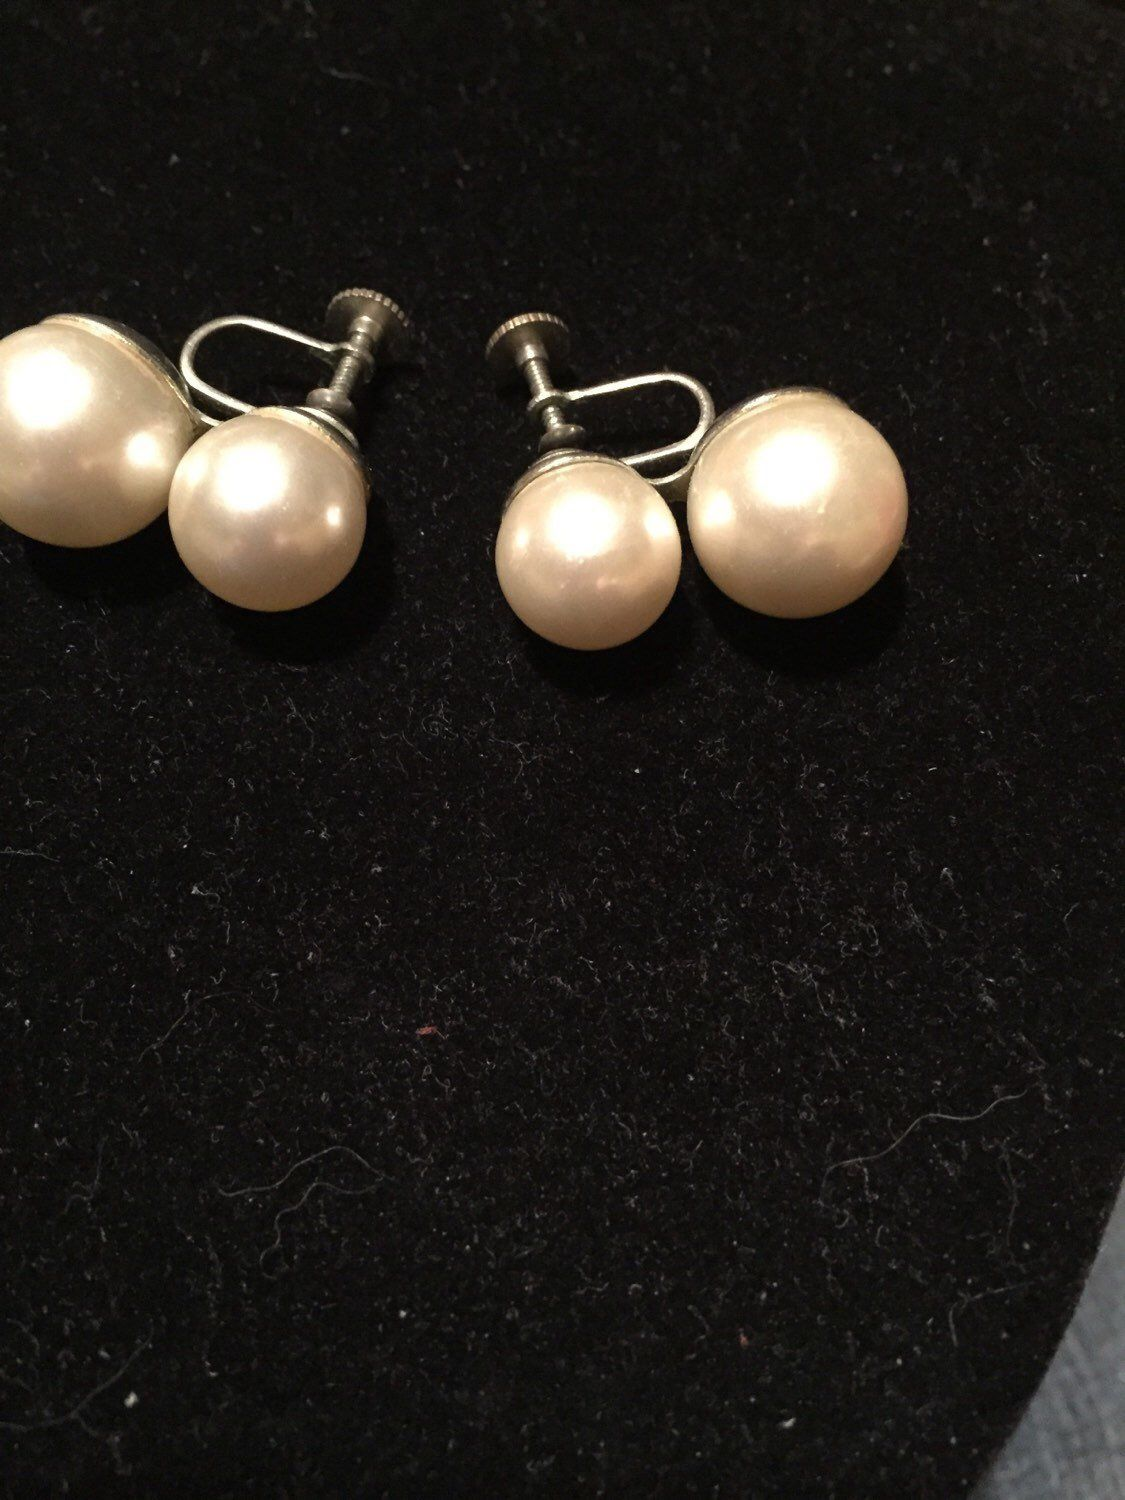 68dc24f91 Excited to share this item from my #etsy shop: Vintage, lg. white, faux  double pearls, fun, formal, rockabilly, 60's, Japan, screw back earrings